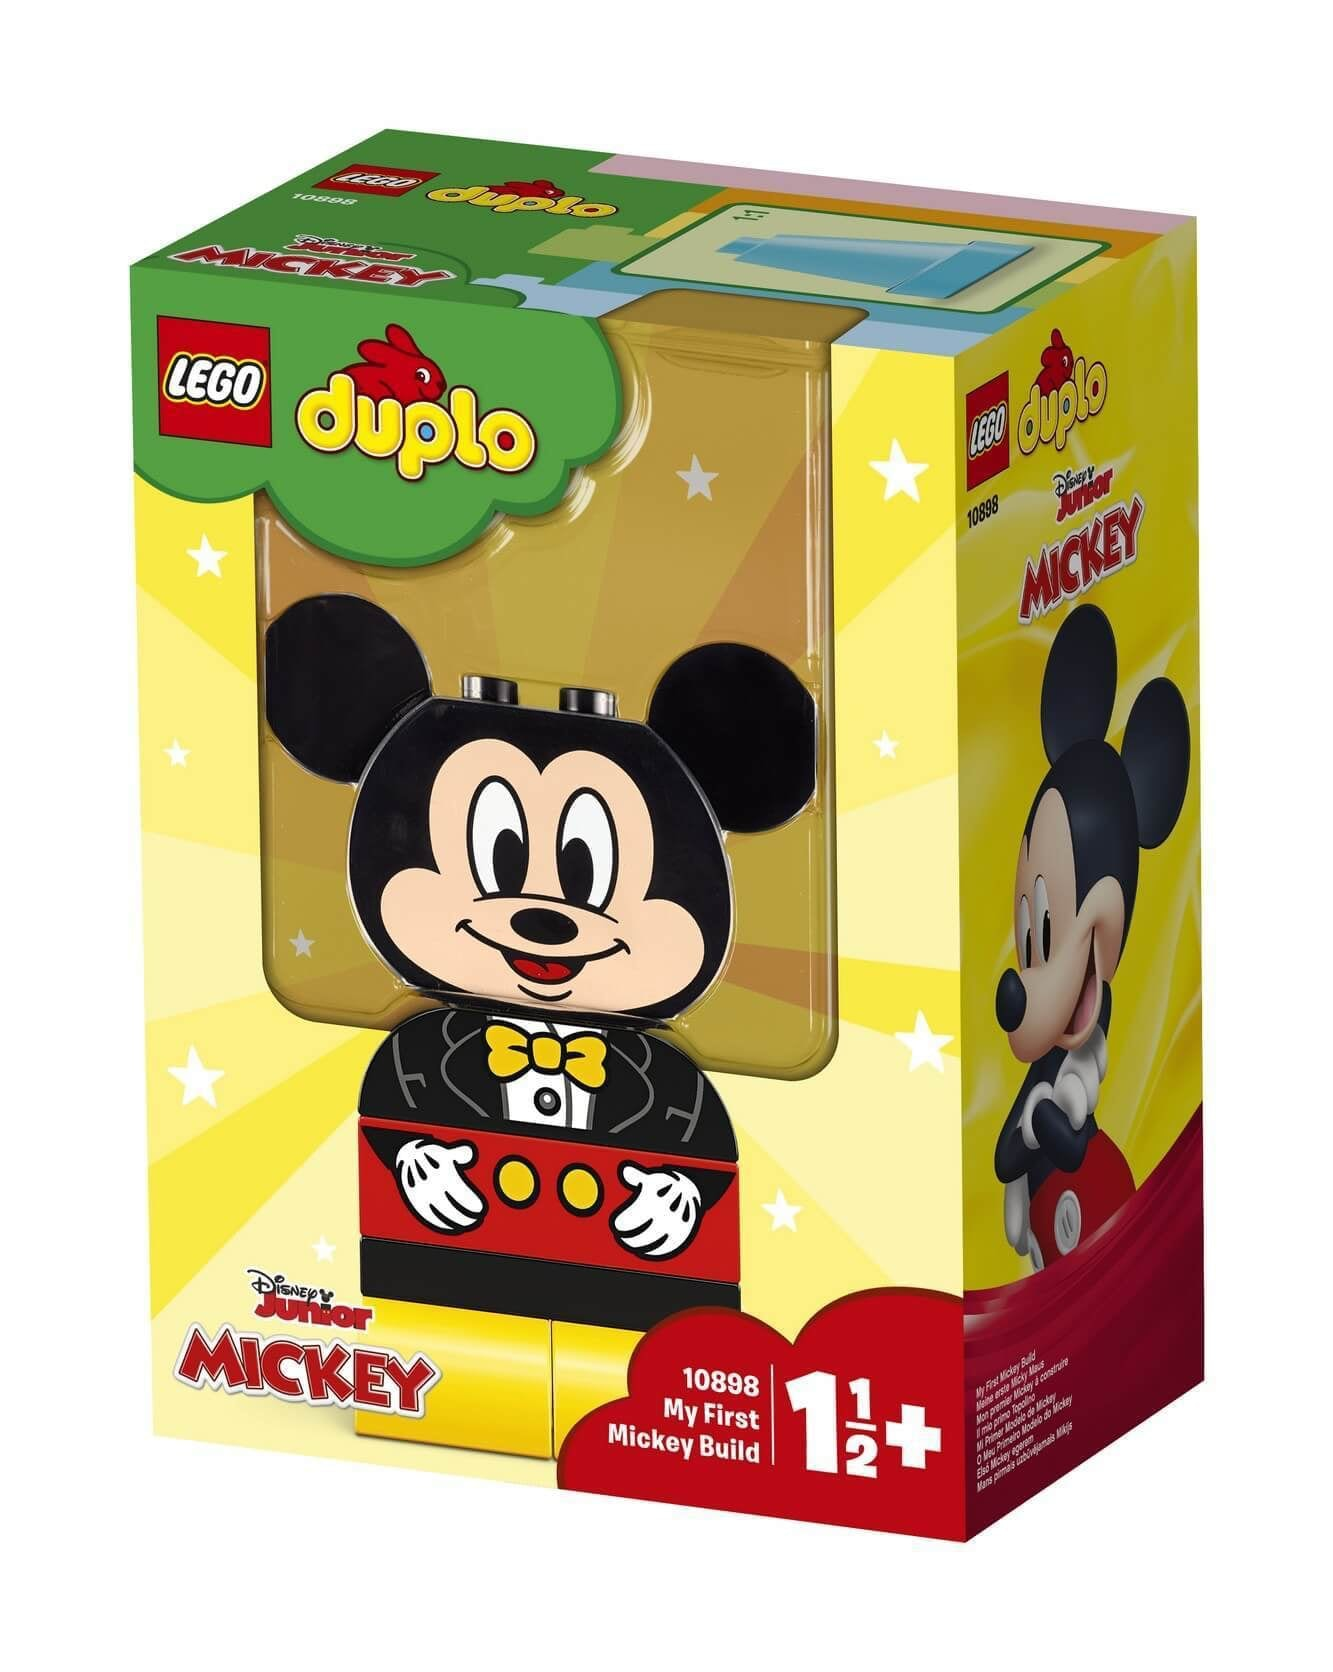 Lego 10898 Duplo First Mickey